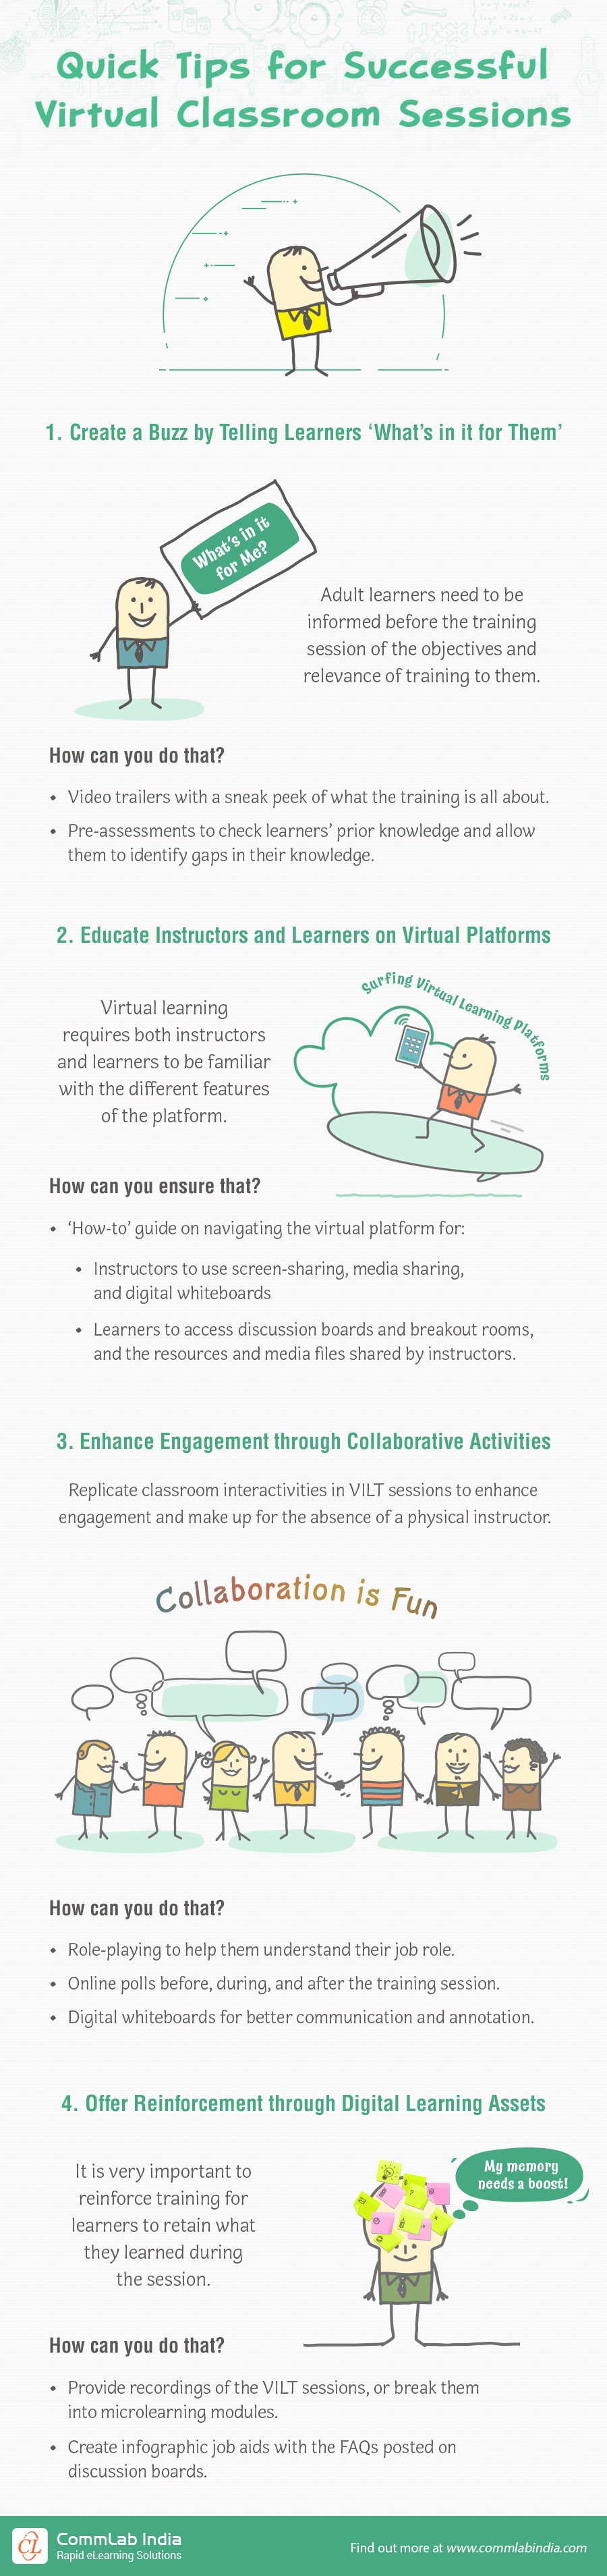 Virtual Classroom: Quick Tips for Getting it Right!